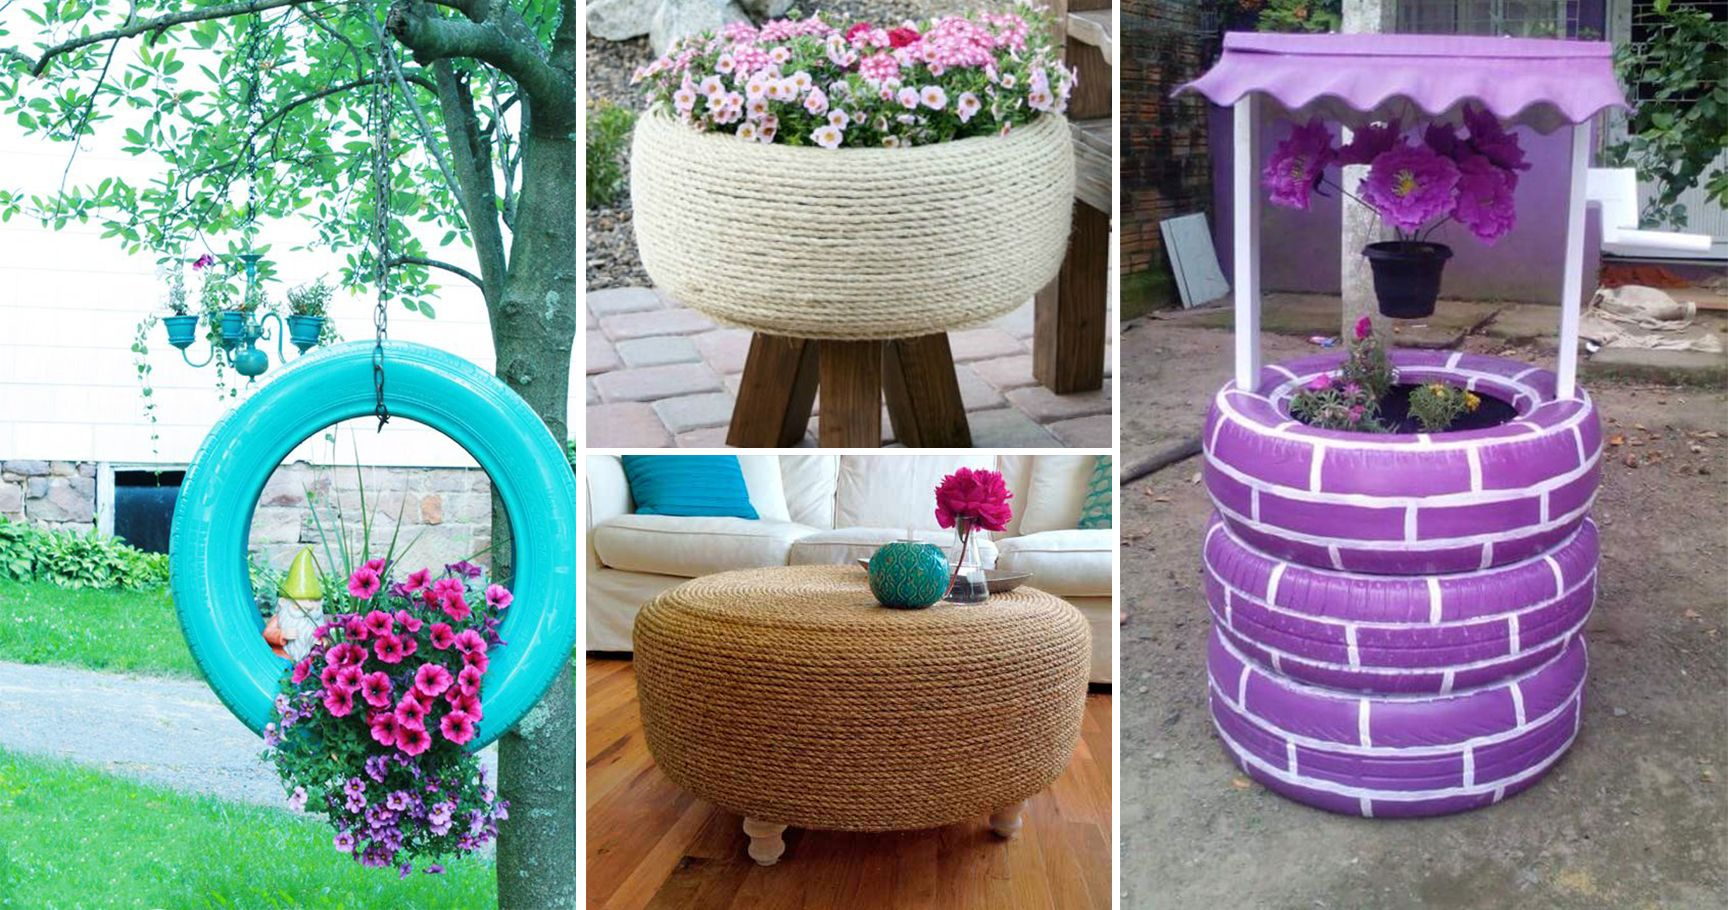 10 Kitschy Ways To Use Old Tires In Your Garden